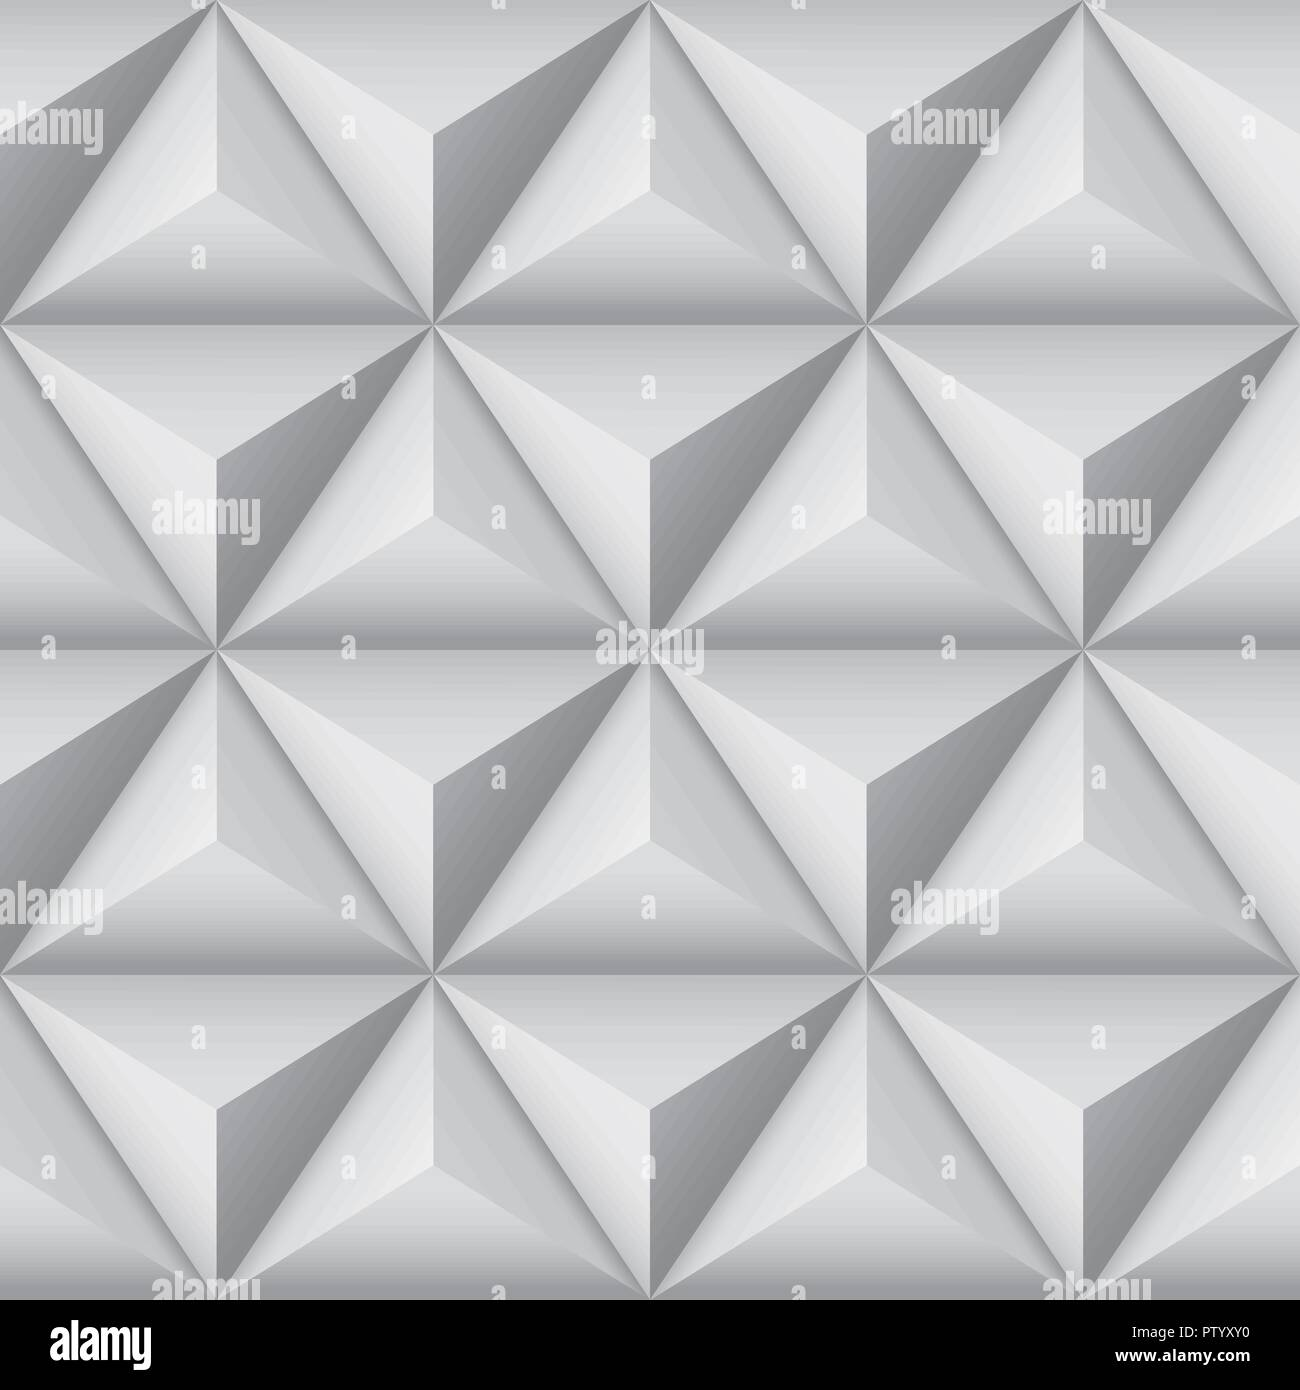 3d geometric pattern with pyramids. Abstract gray seamless background Stock Vector